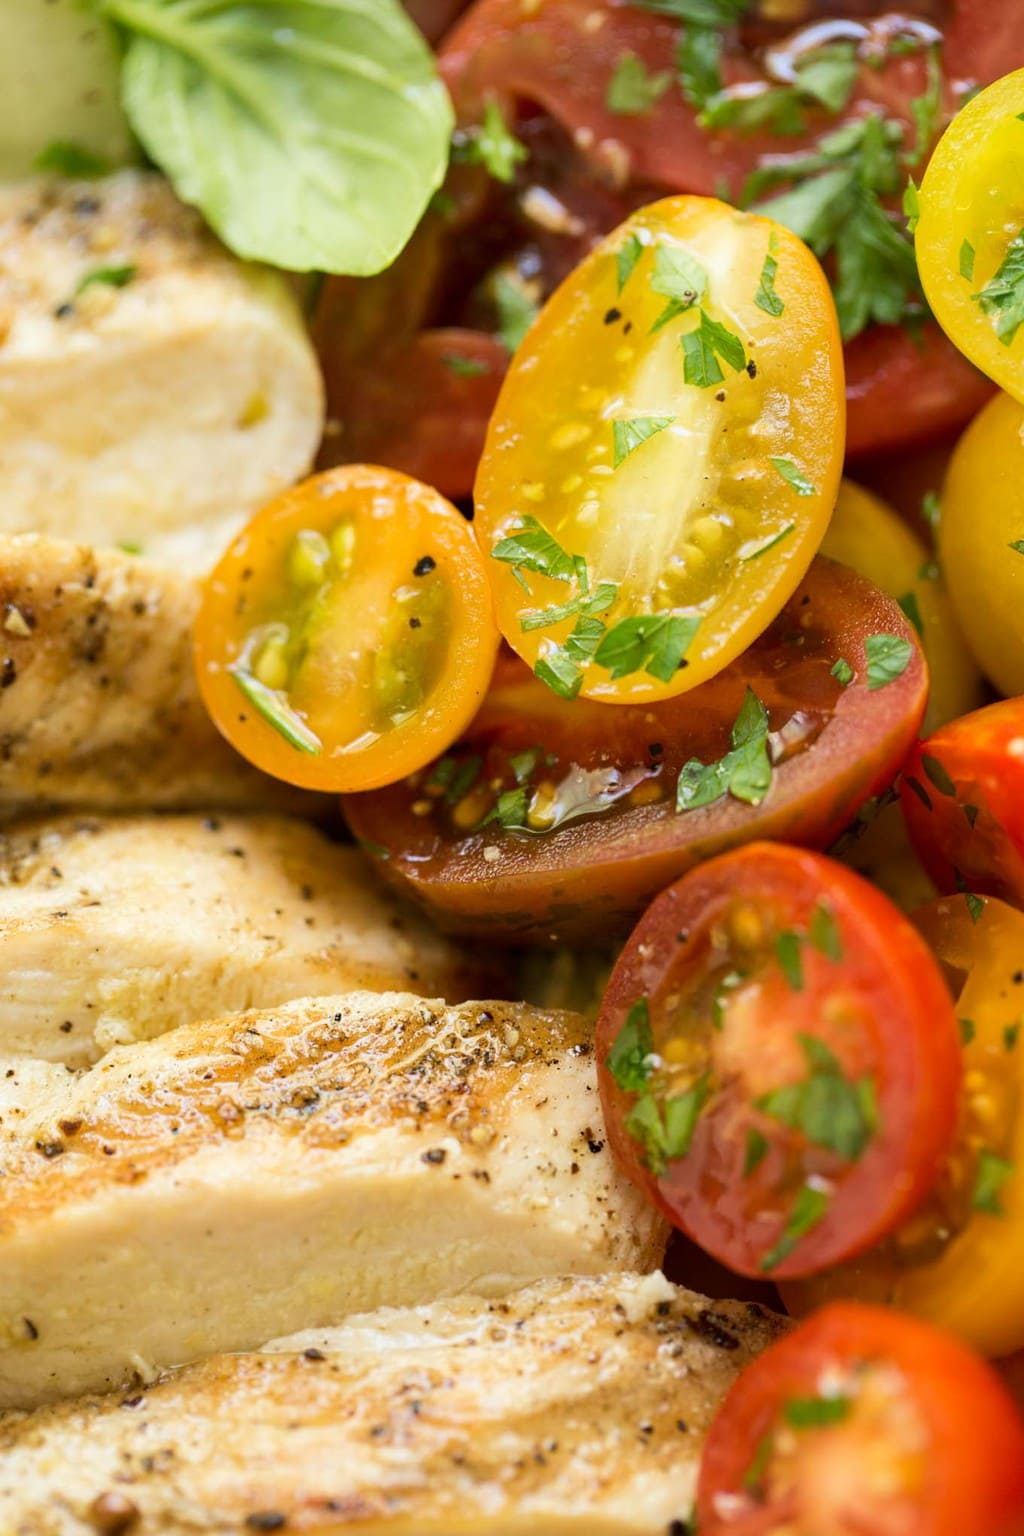 Grilled Chicken with Tomato Cucumber Salad - It doesn't get much better than this! A light, lean, healthy and incredibly delicious salad! thecafesucrefarine.com